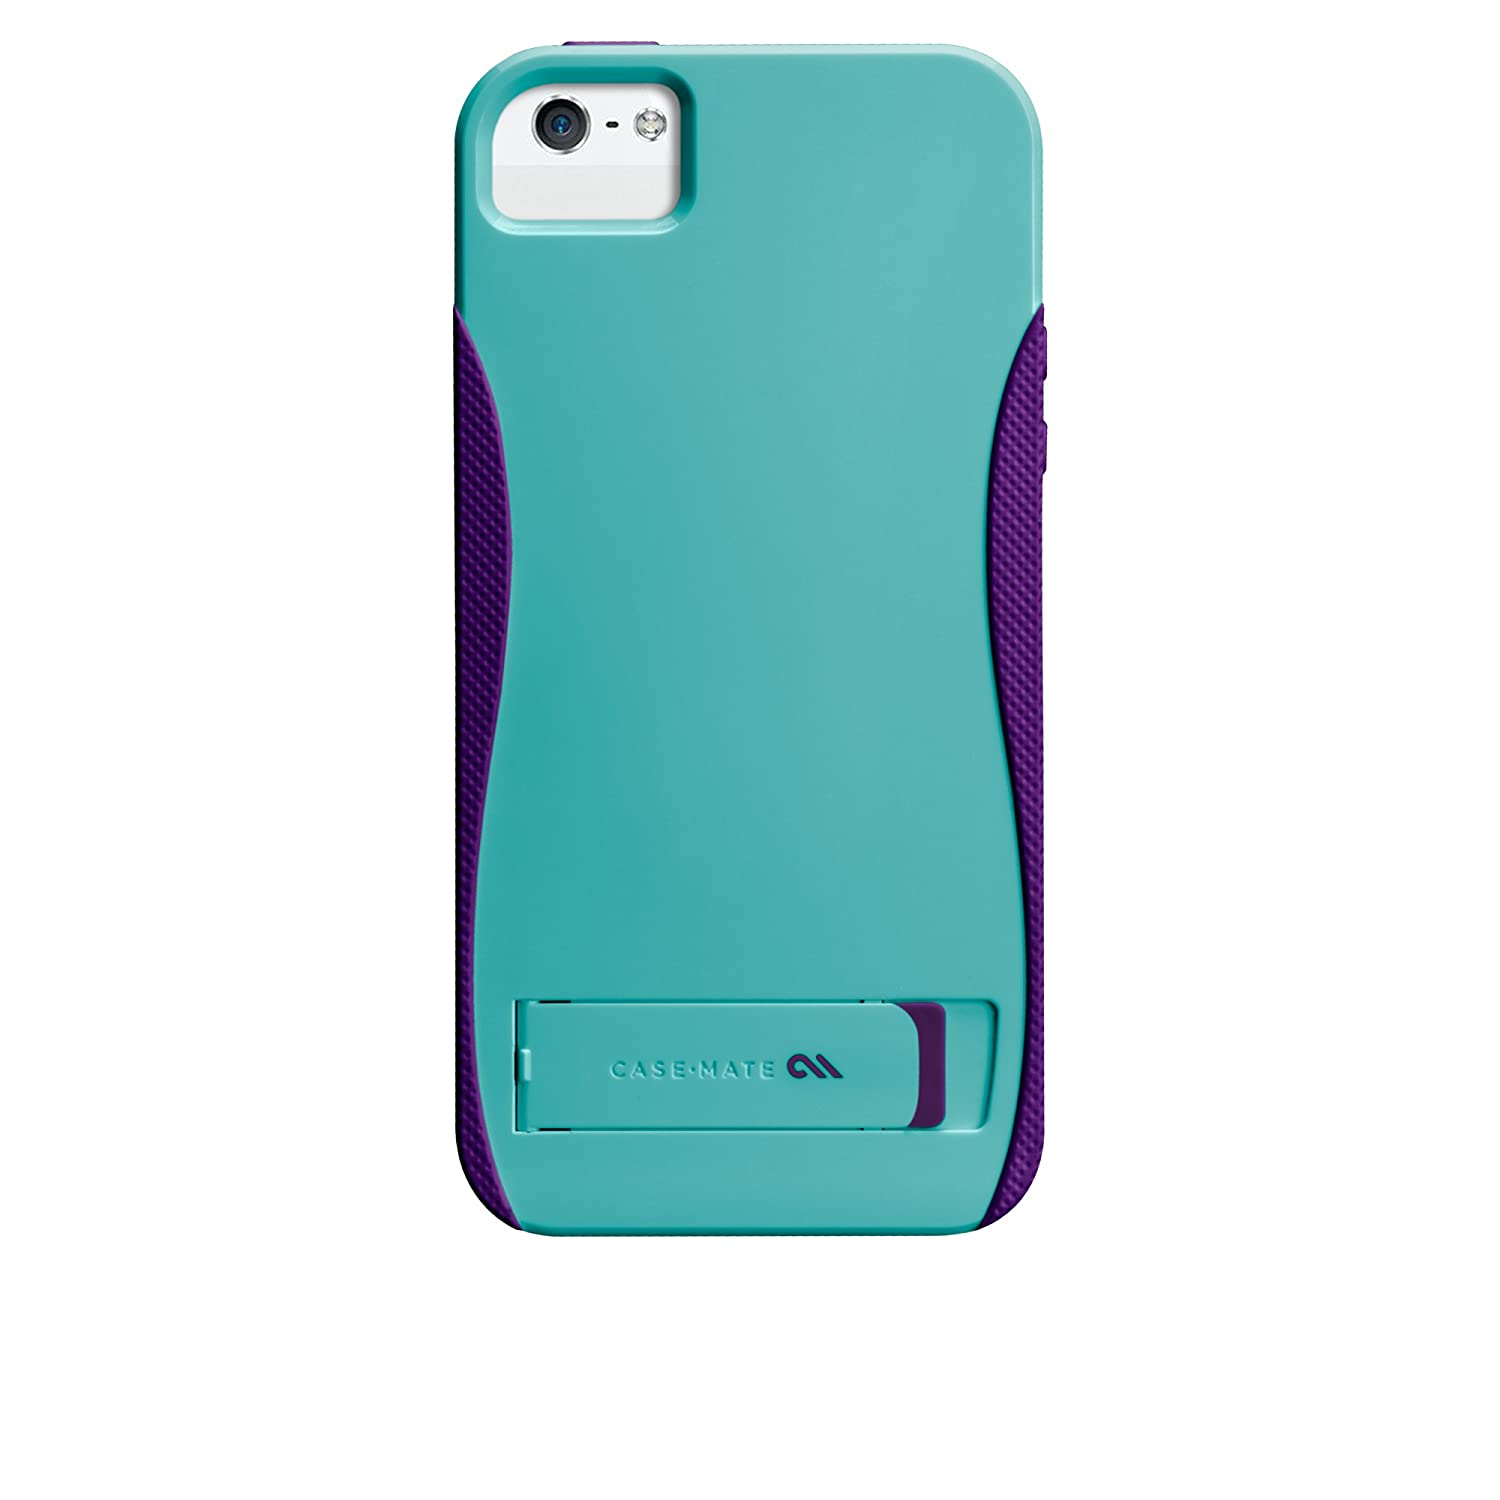 Medical research and corporate technology case mate iphone 4 case - Amazon Com Case Mate Pop Stand Case For Apple Iphone 5 5s Pool Blue Violet Purple Cell Phones Accessories